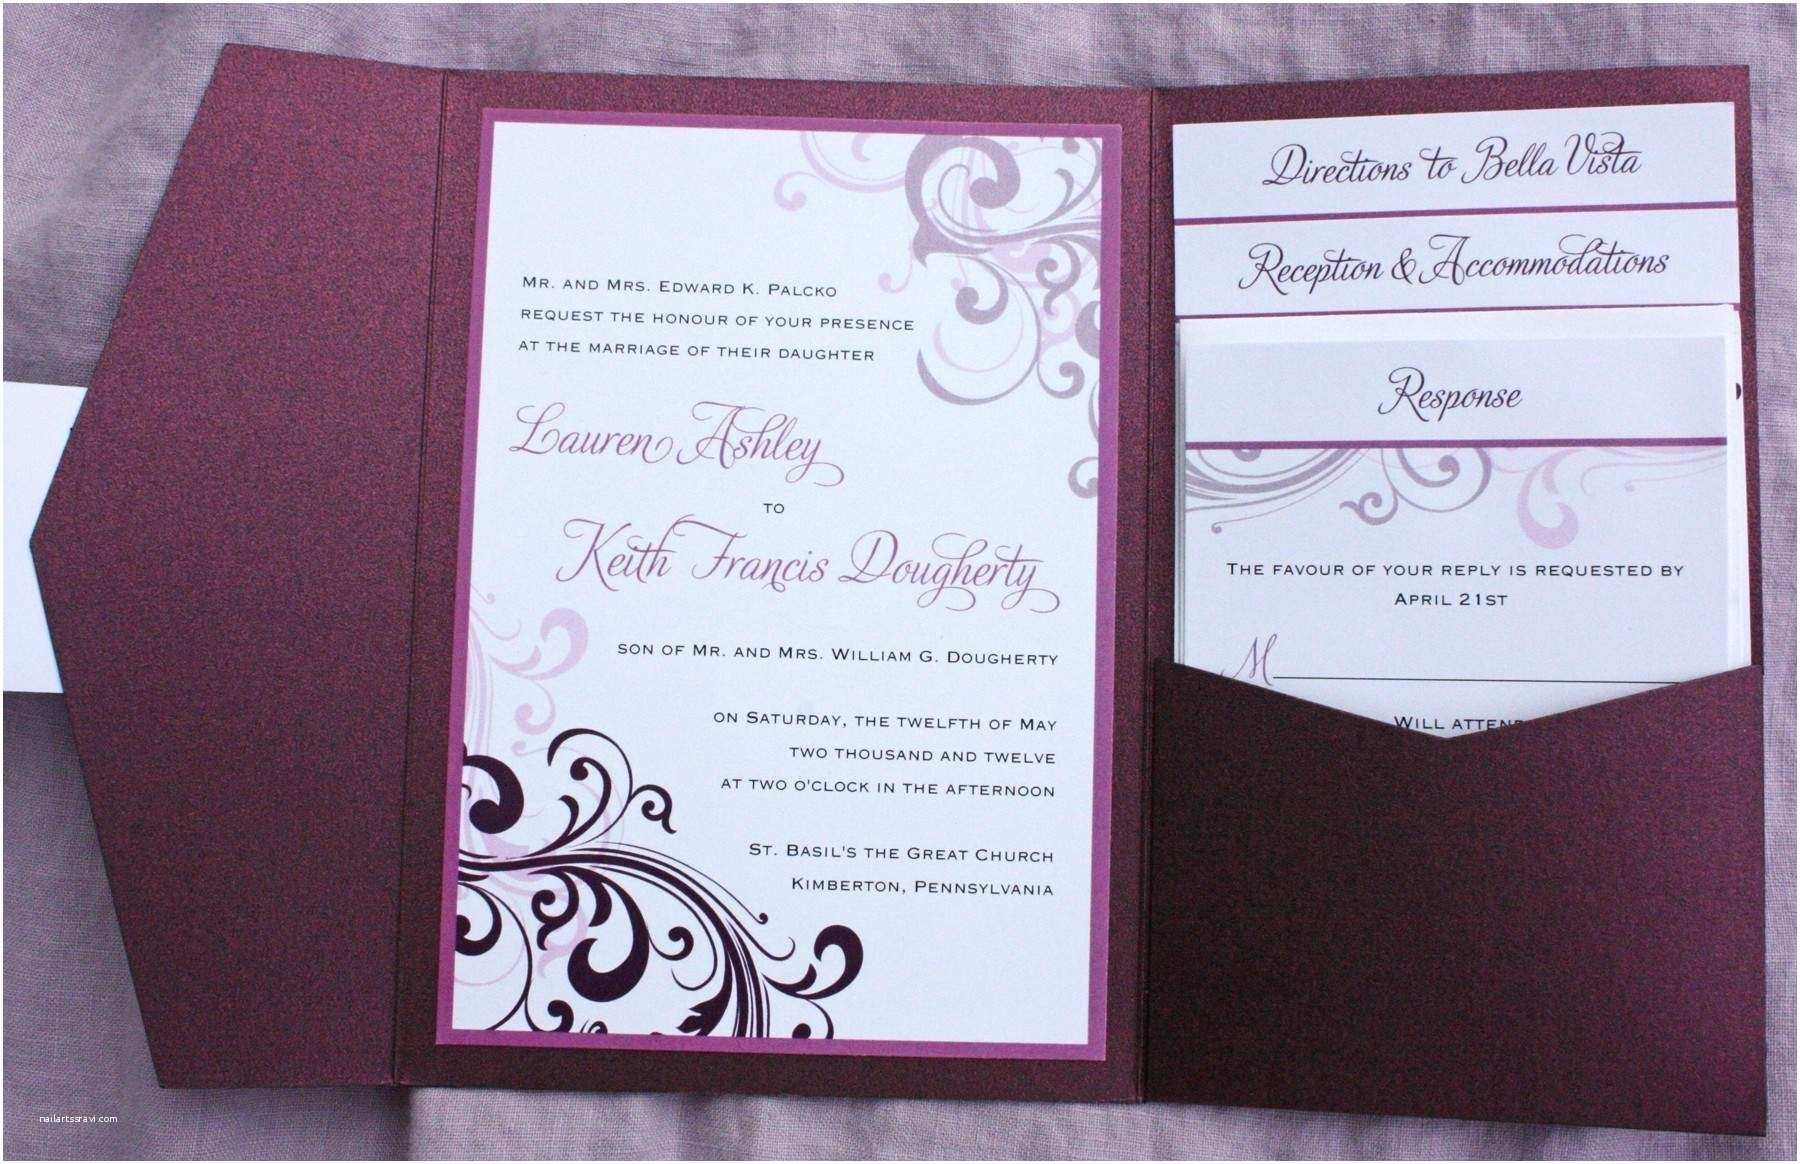 Make Your Own Wedding Invitations Templates How to Make Your Own Wedding Invitations Template Resume